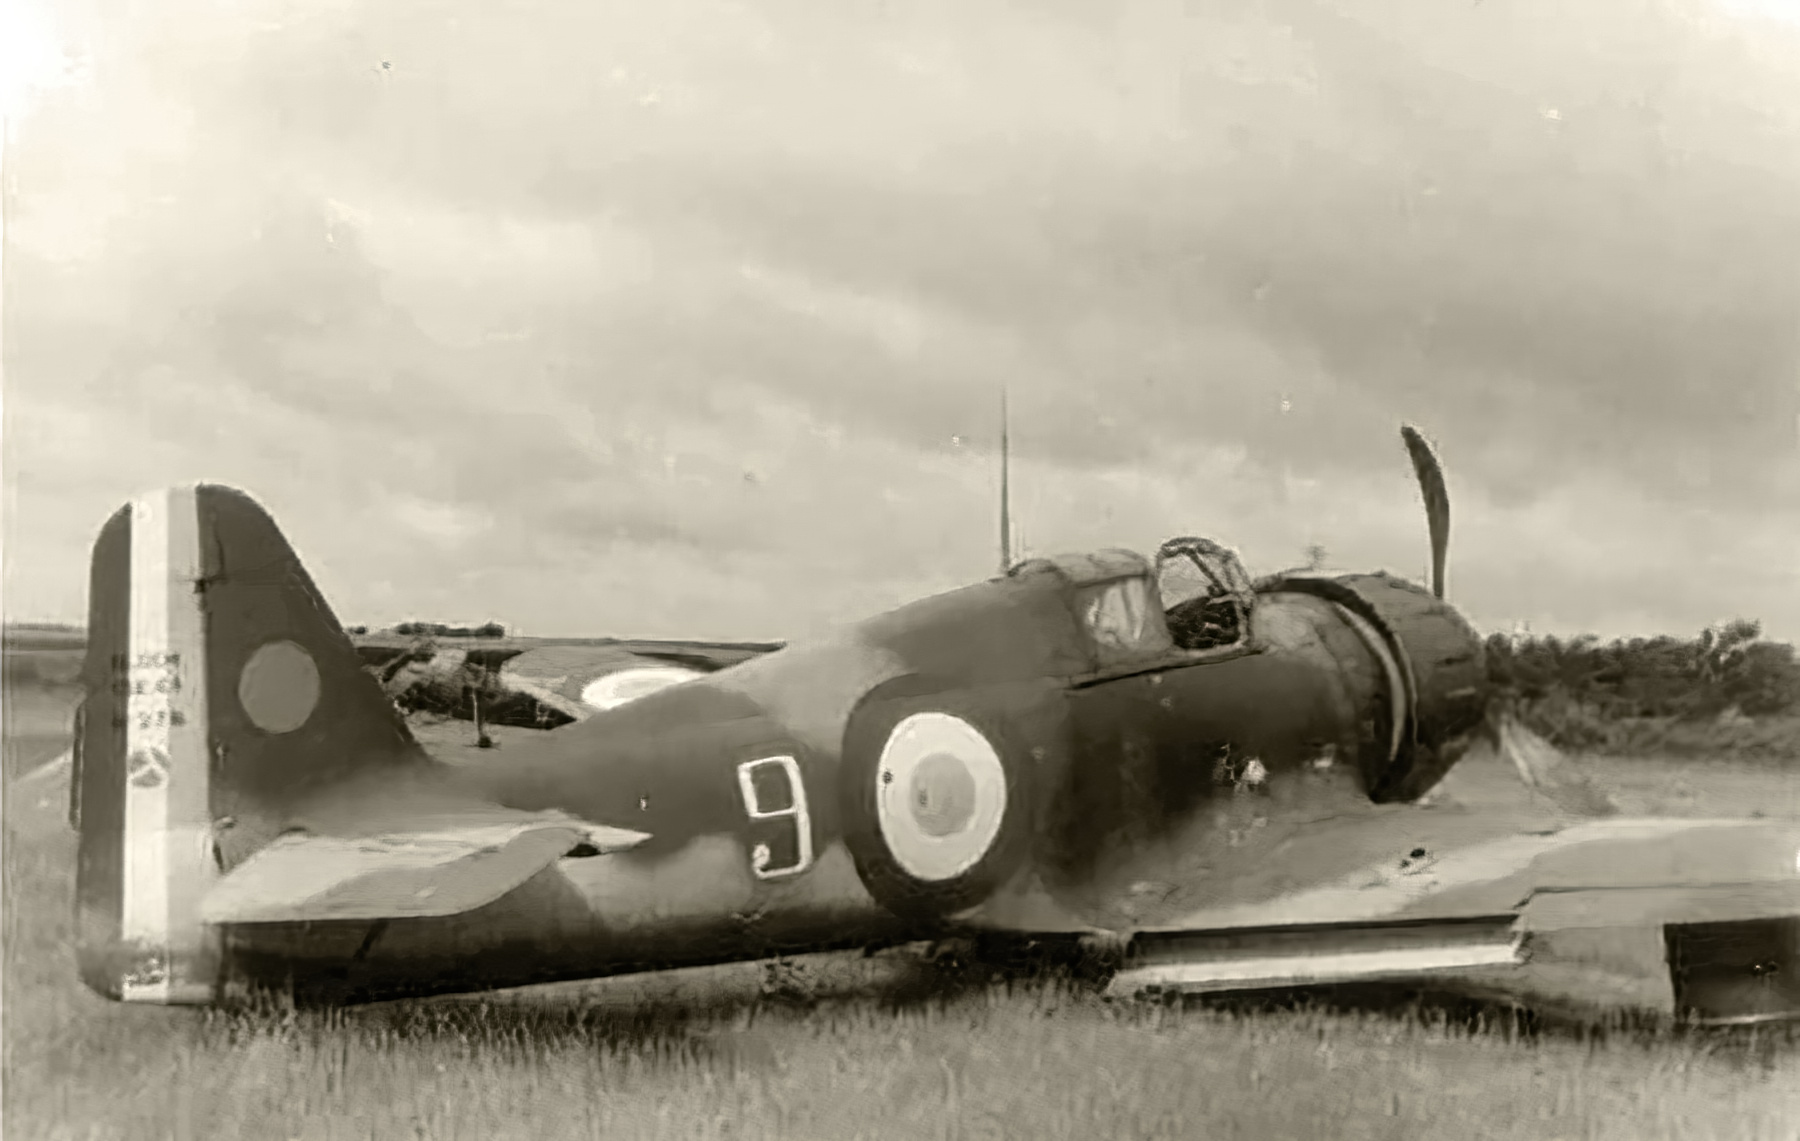 French Airforce Bloch MB 152 White 9 force landed battle of France 1940 web 01